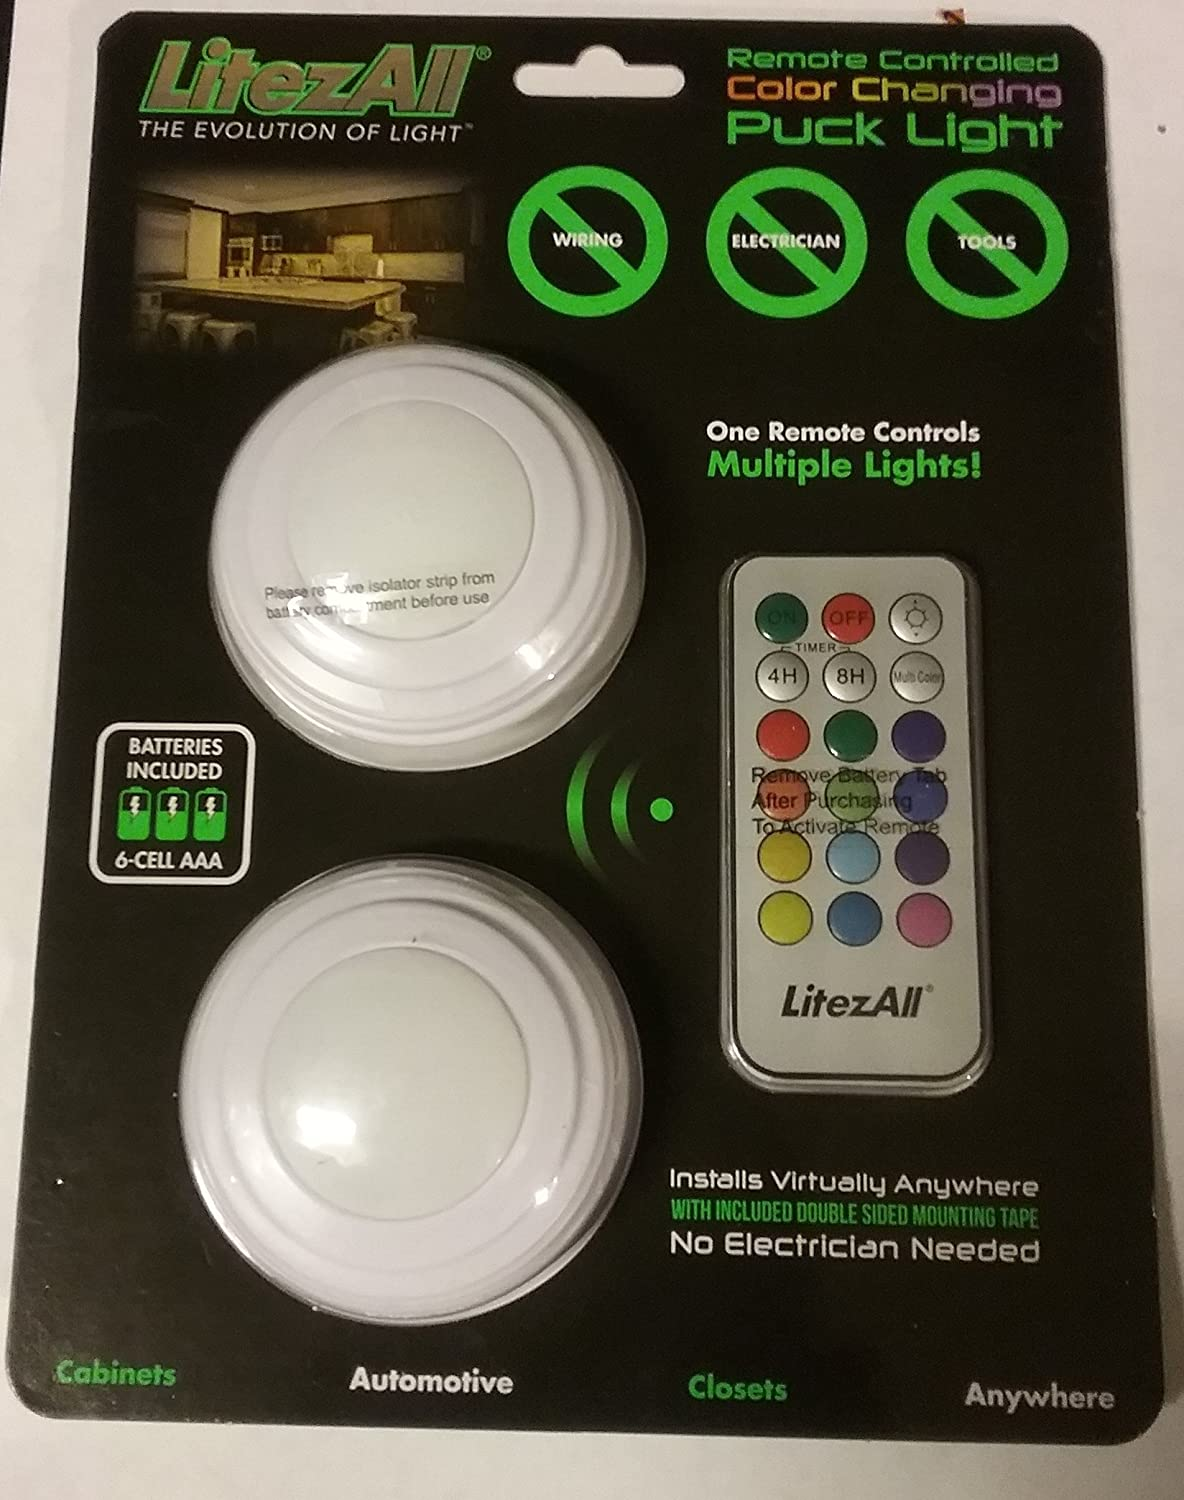 Promier LitezAll Wireless Remote Controlled Color Changing Puck Light Set